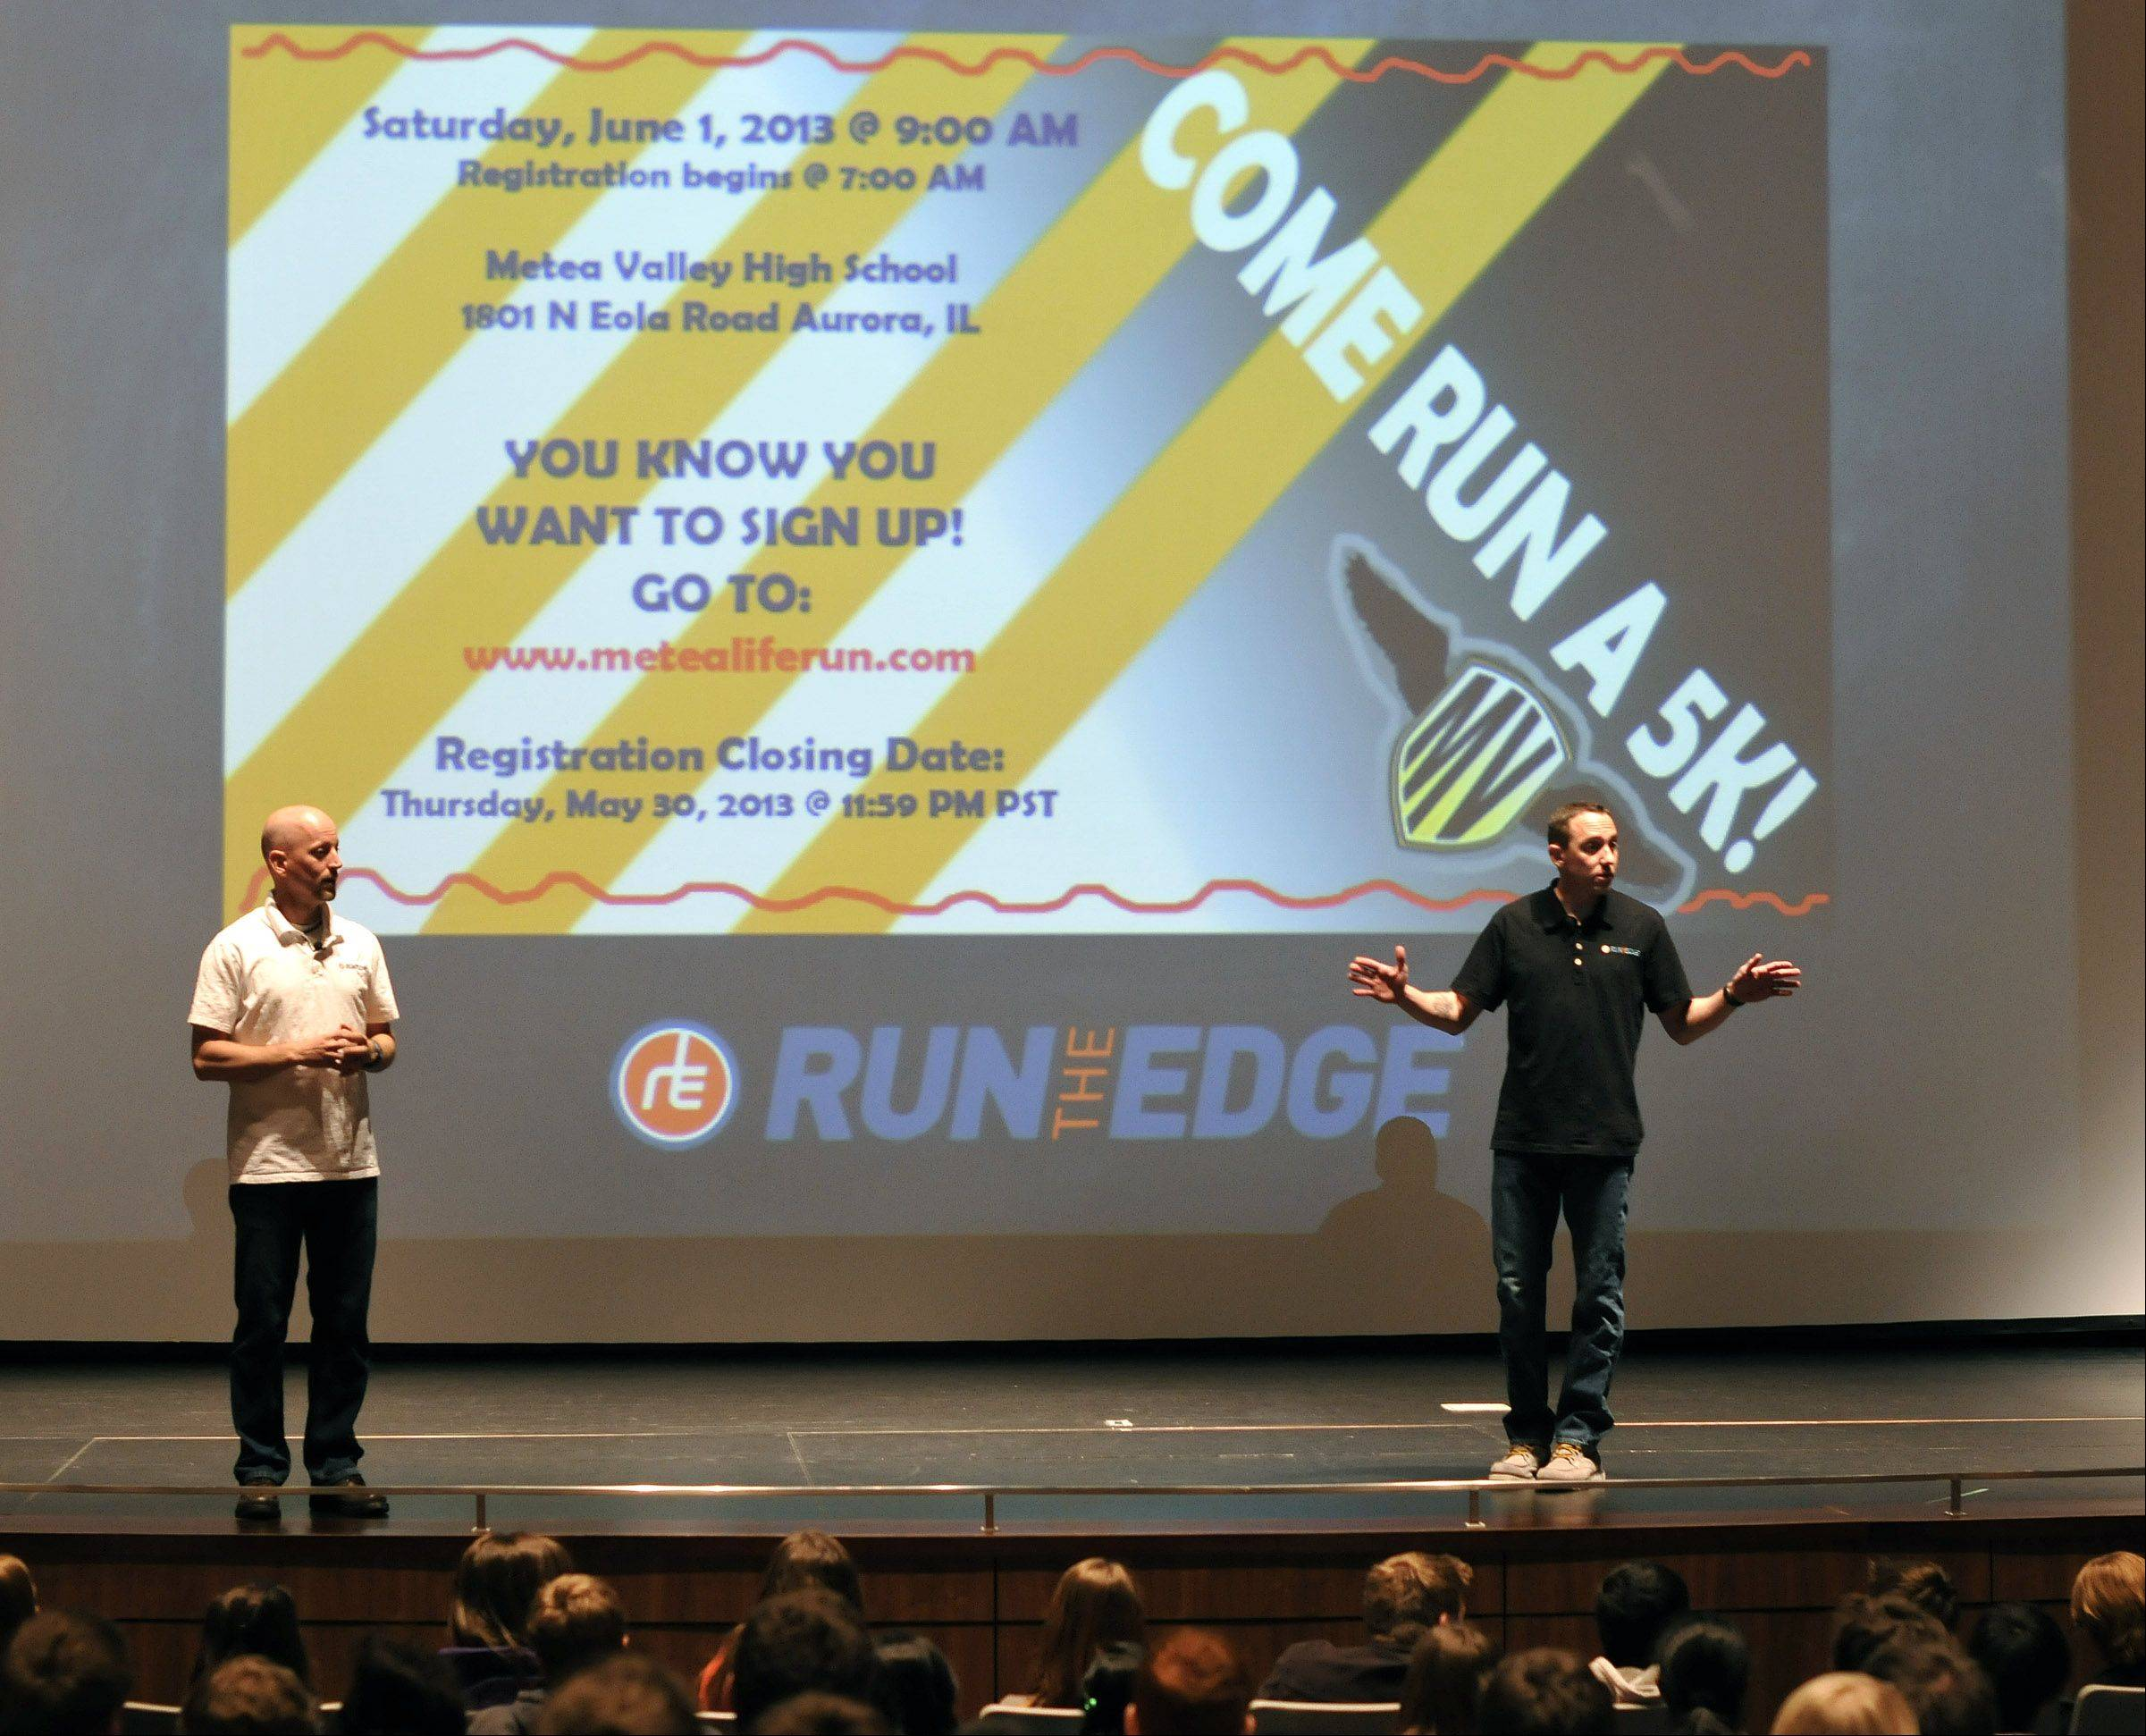 �Running the Edge� authors Tim Catalano and Adam Goucher will attend Metea Valley High School�s first charity 5K, the Metea LIFE Run, at 9 a.m. Saturday, June 1, at the school in Aurora. The authors appeared at the school in April, discussing their book and encouraging students to set and strive for ambitious goals.